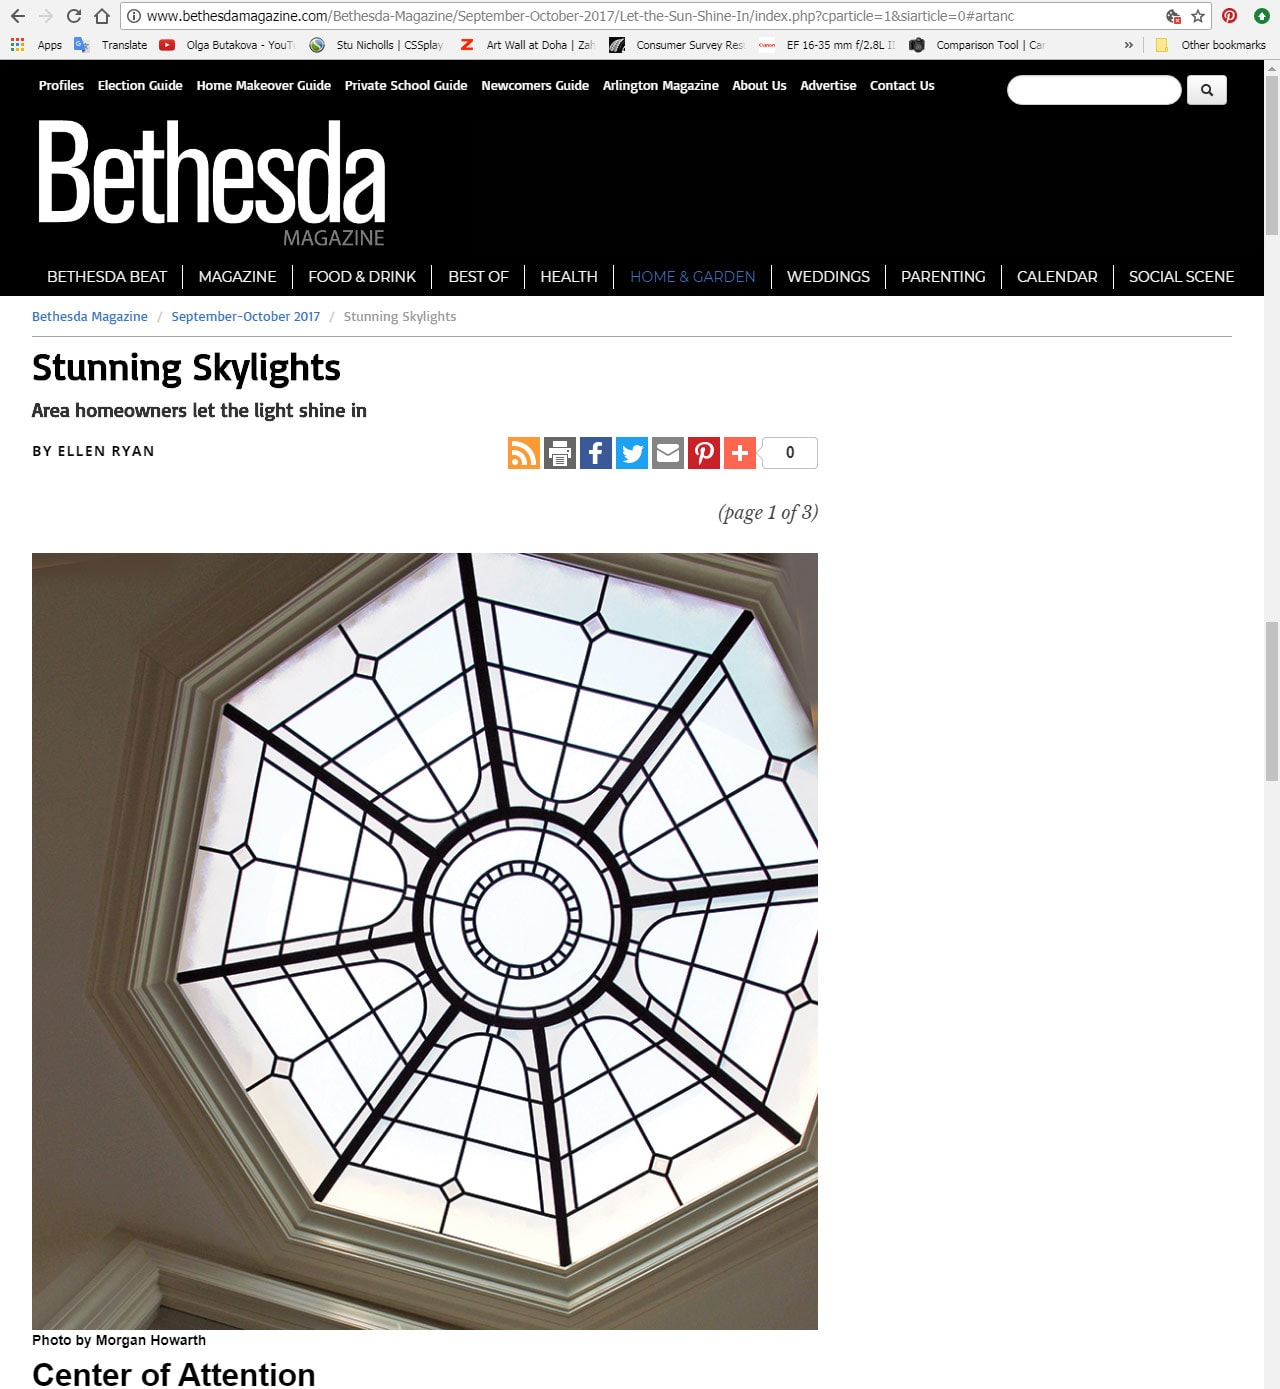 Leaded glass dome featured by Bathesda magazine2017